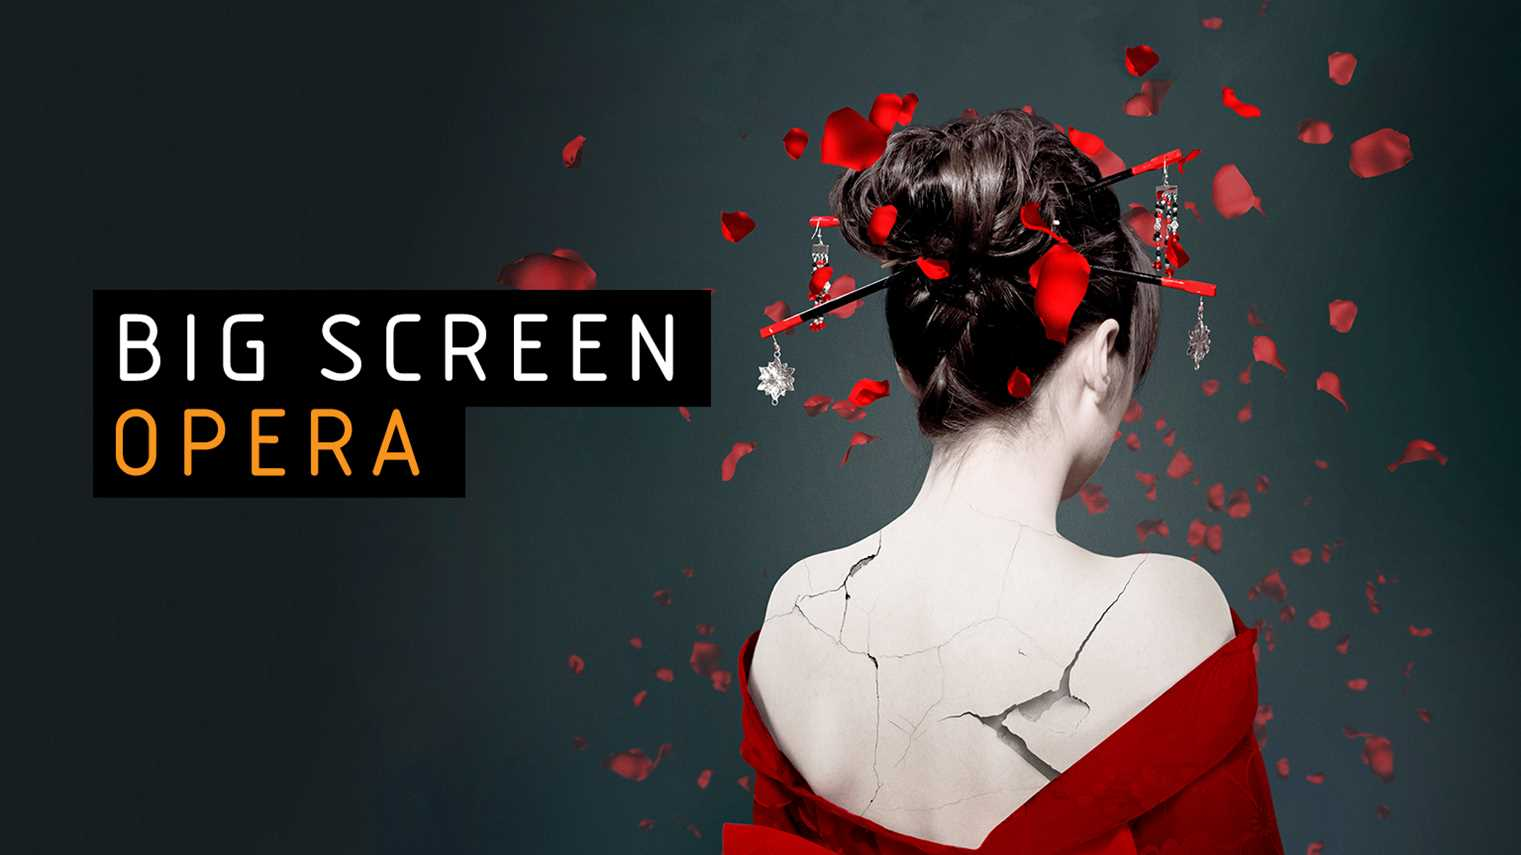 Big Screen Opera